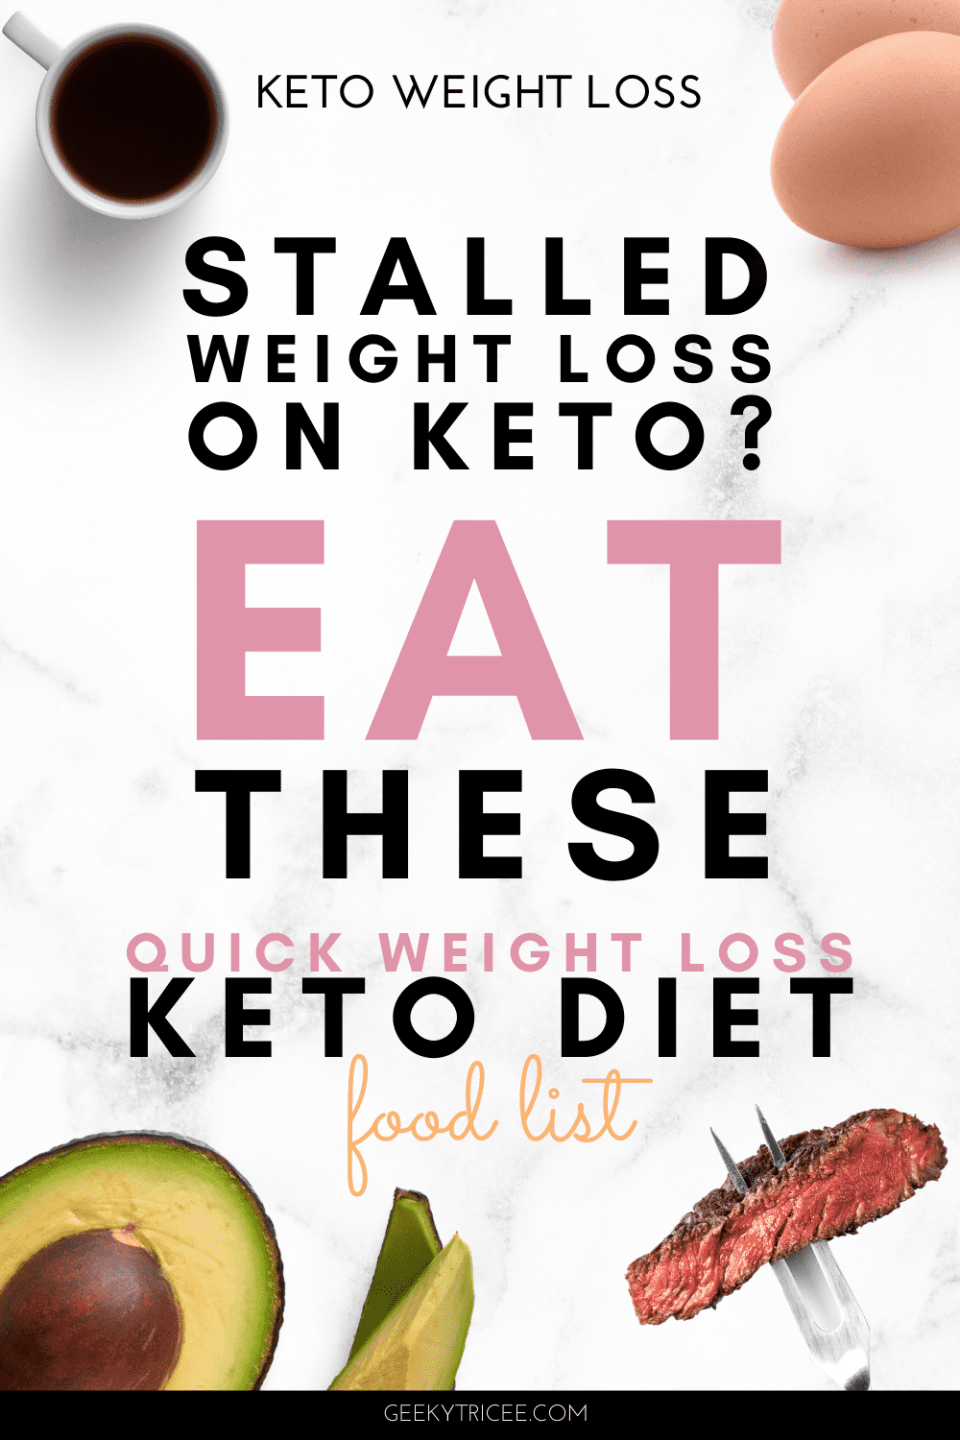 Stalled weight loss on keto? Eat These. Quick weight loss keto diet food list Pinterest pin